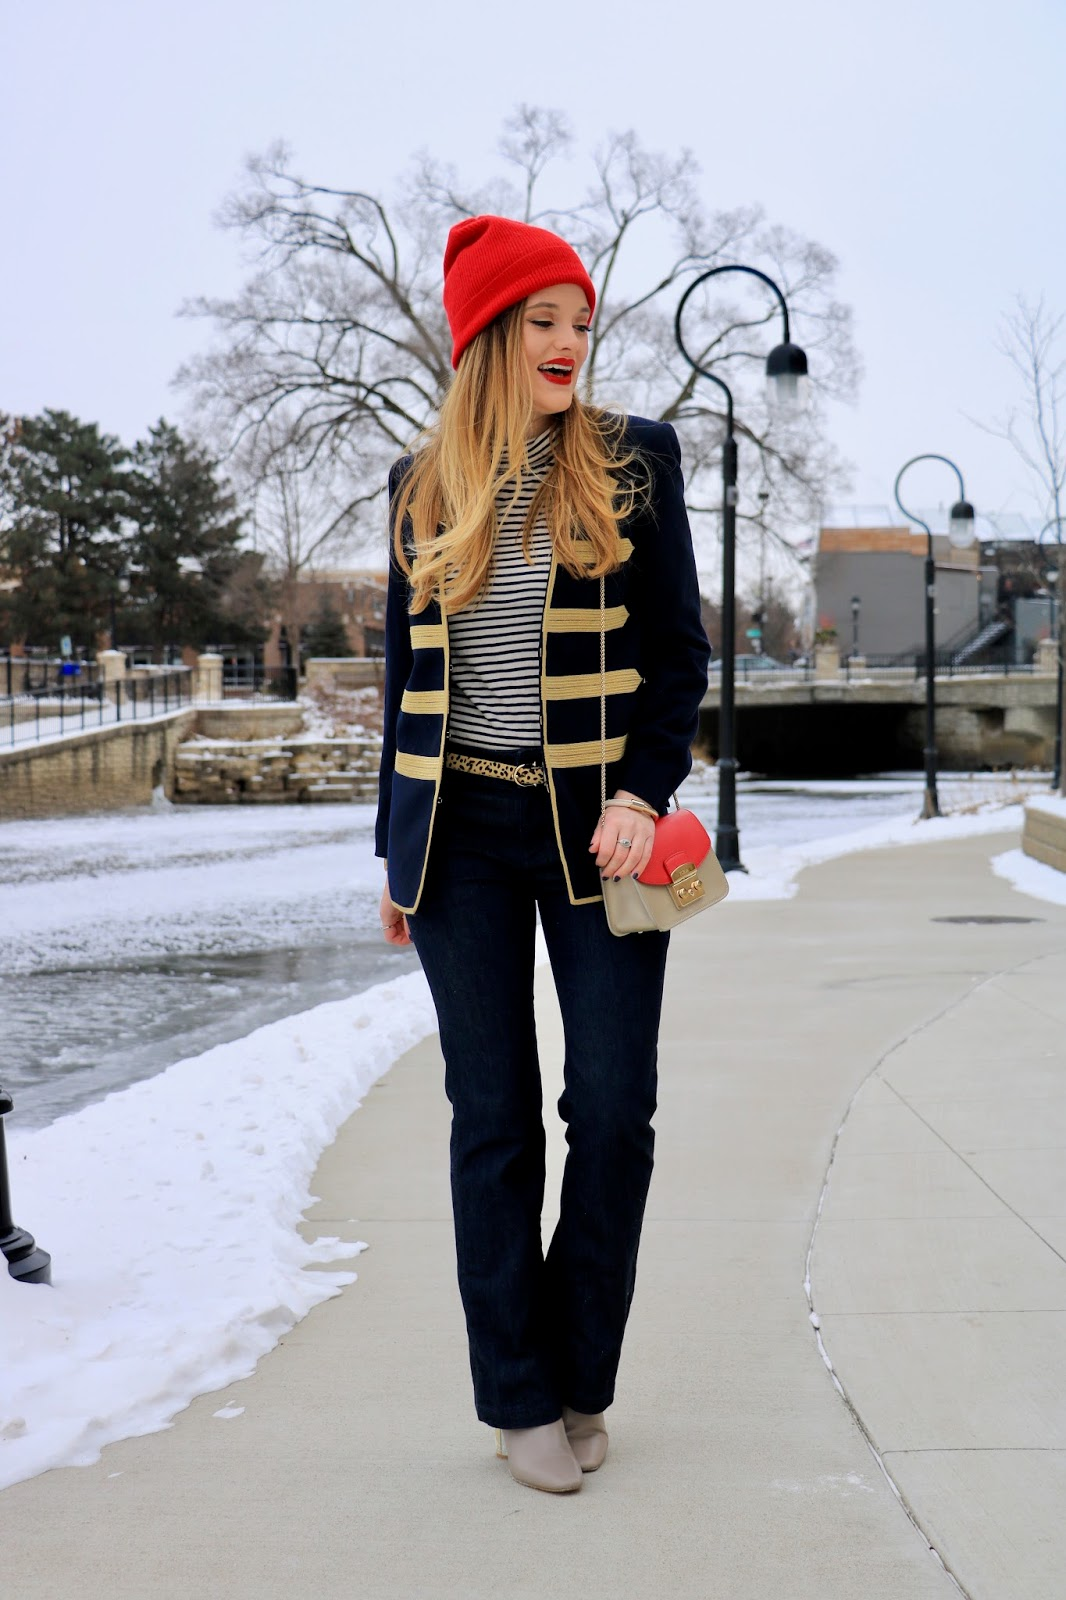 Nyc fashion blogger Kathleen Harper's winter outfit ideas